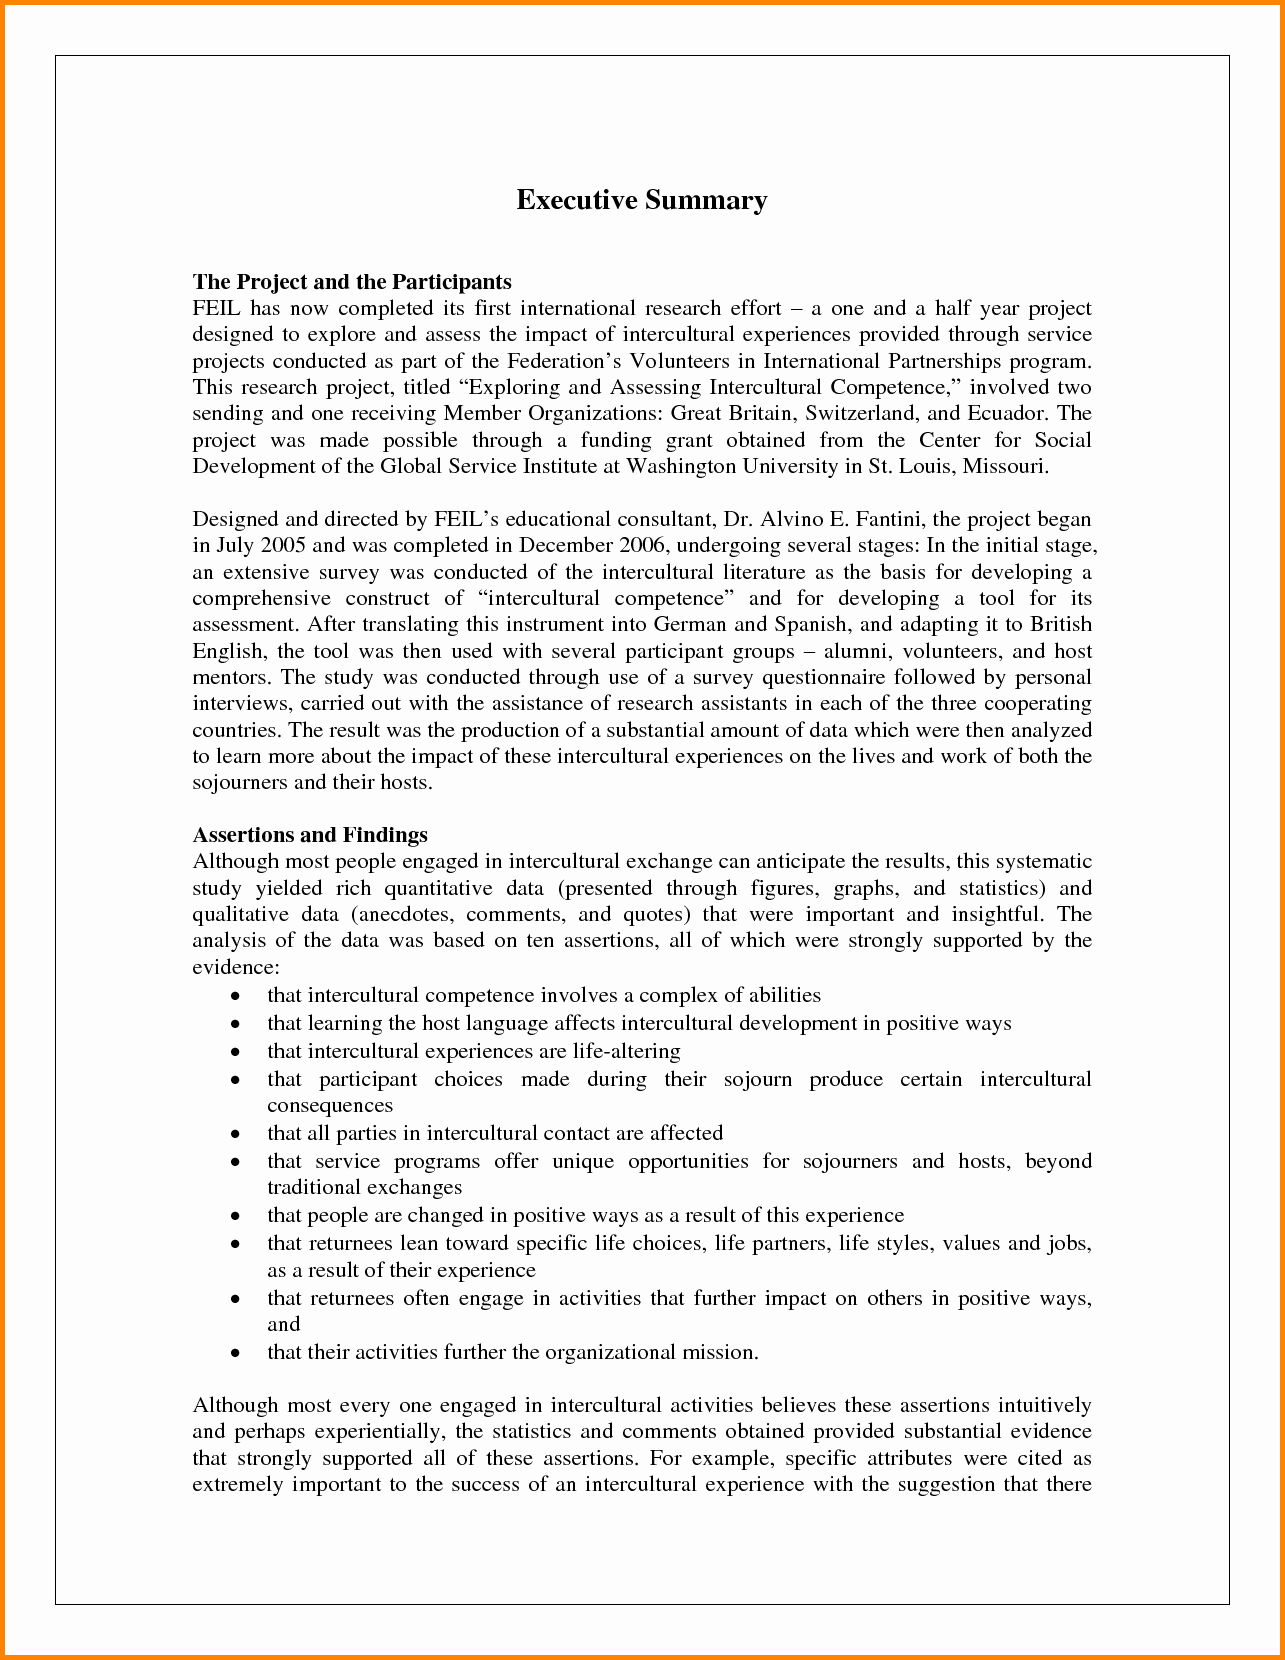 Project Executive Summary Template Word Fresh Executive Summary Template Example Mughals